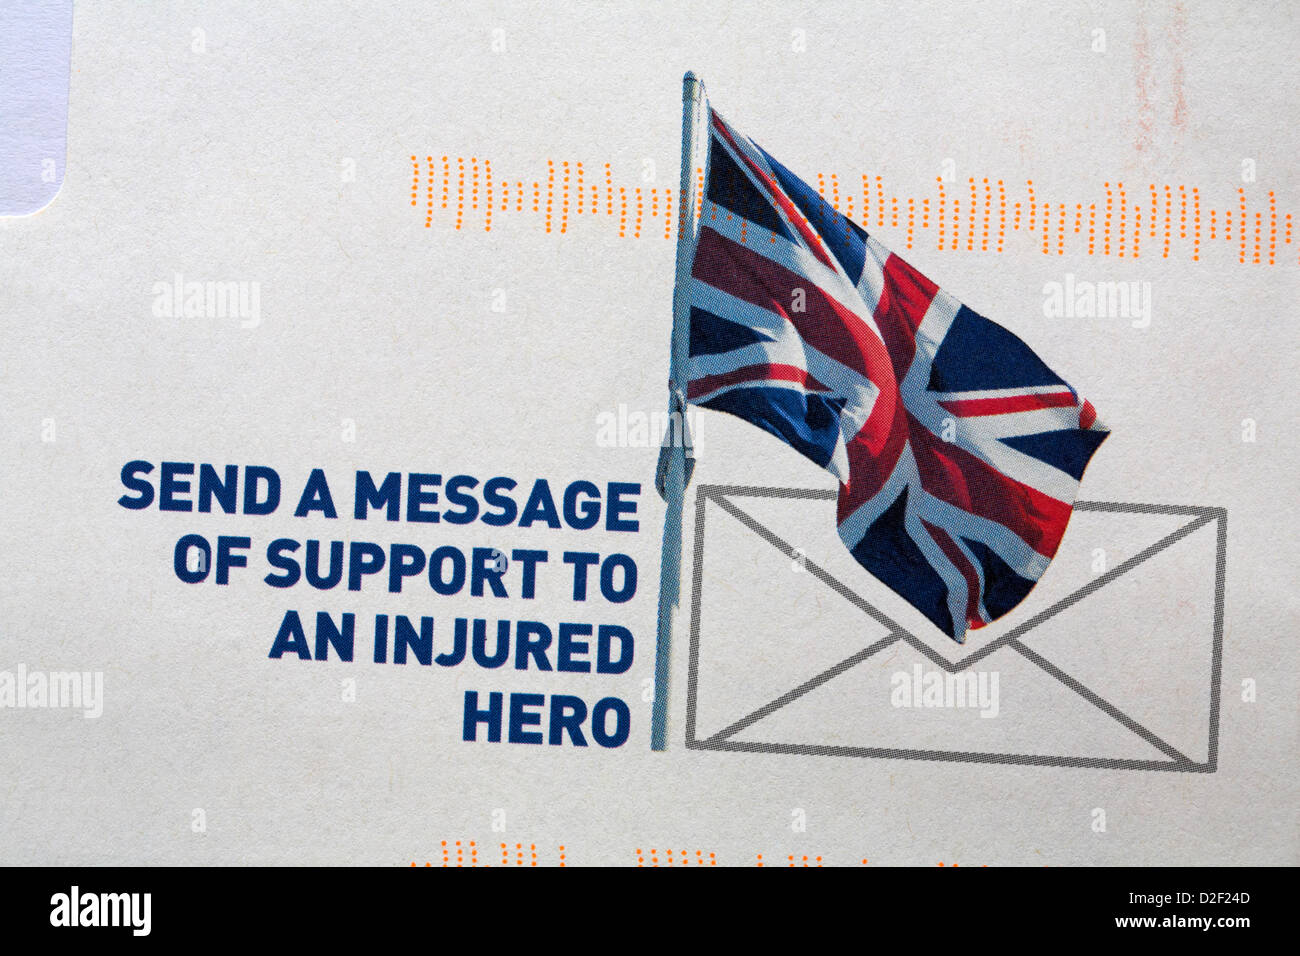 send a message of support to an injured hero information on The Royal British Legion envelope - Stock Image